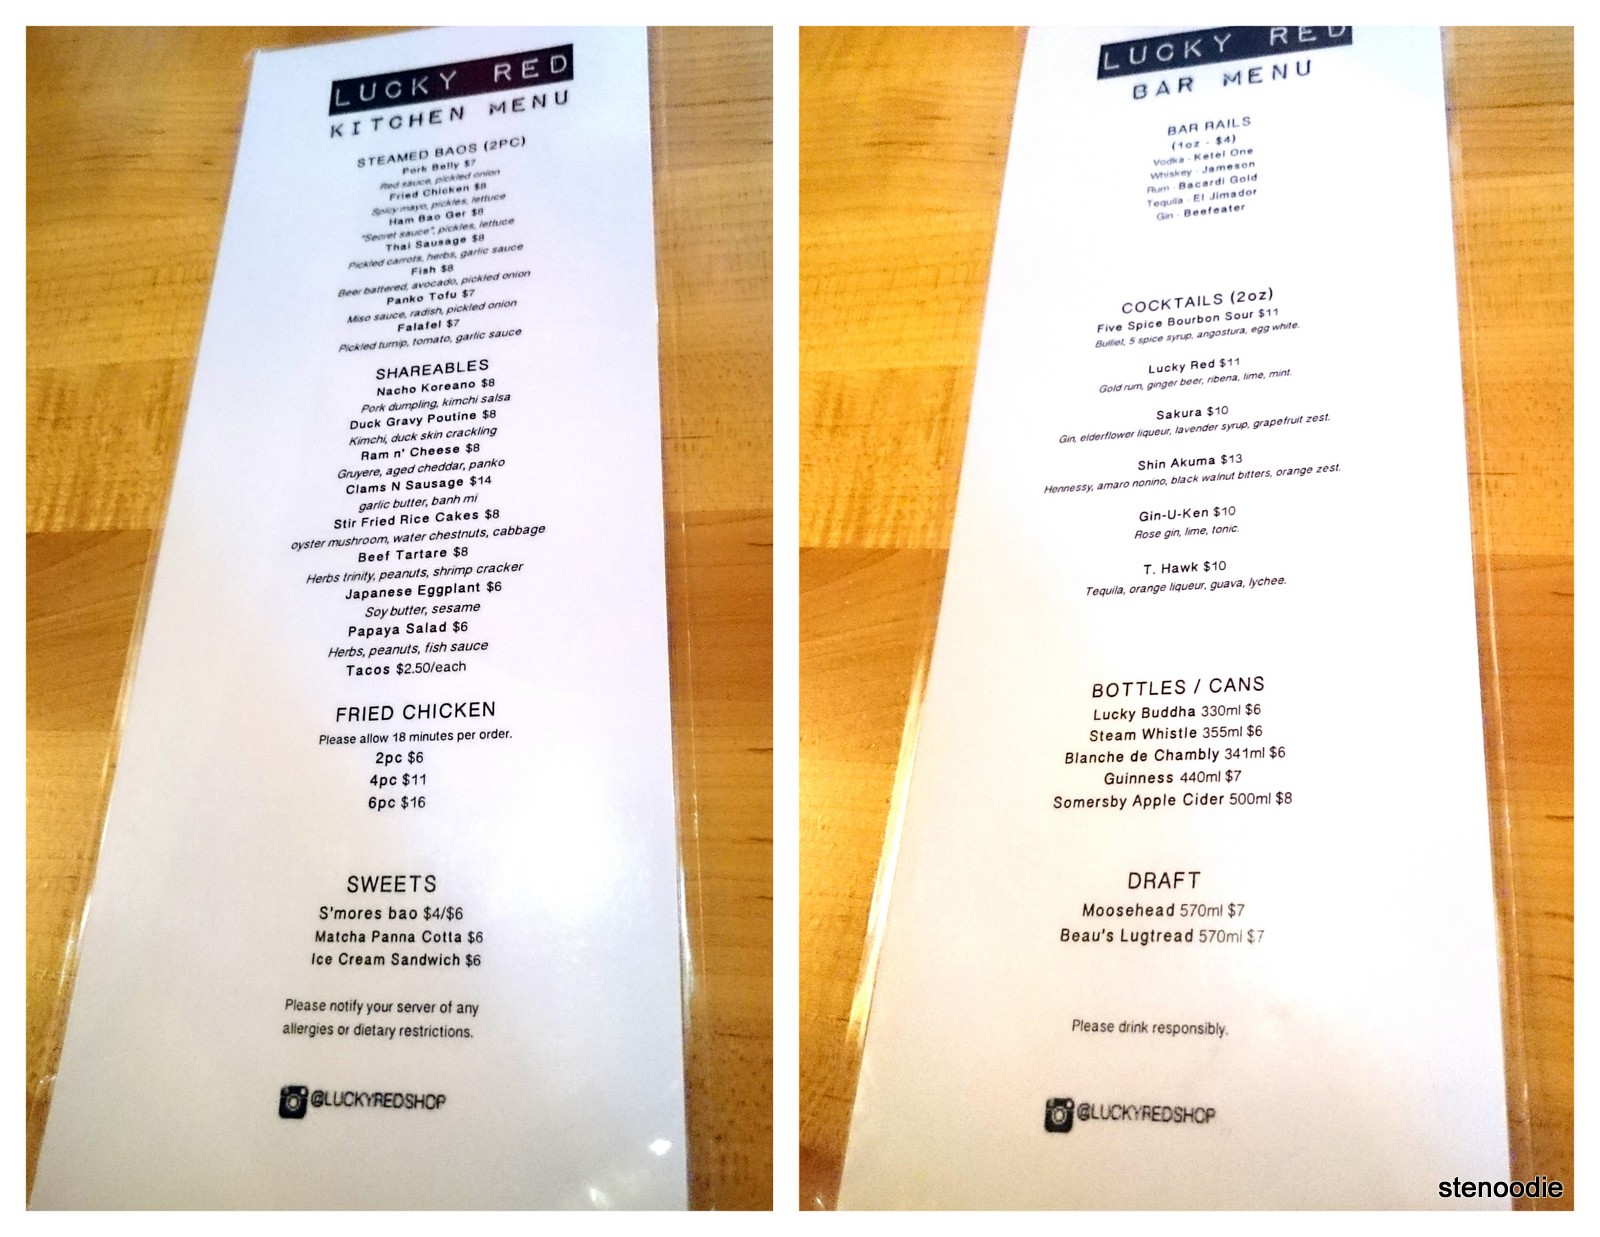 Lucky Red Kitchen Menu & Bar Menu